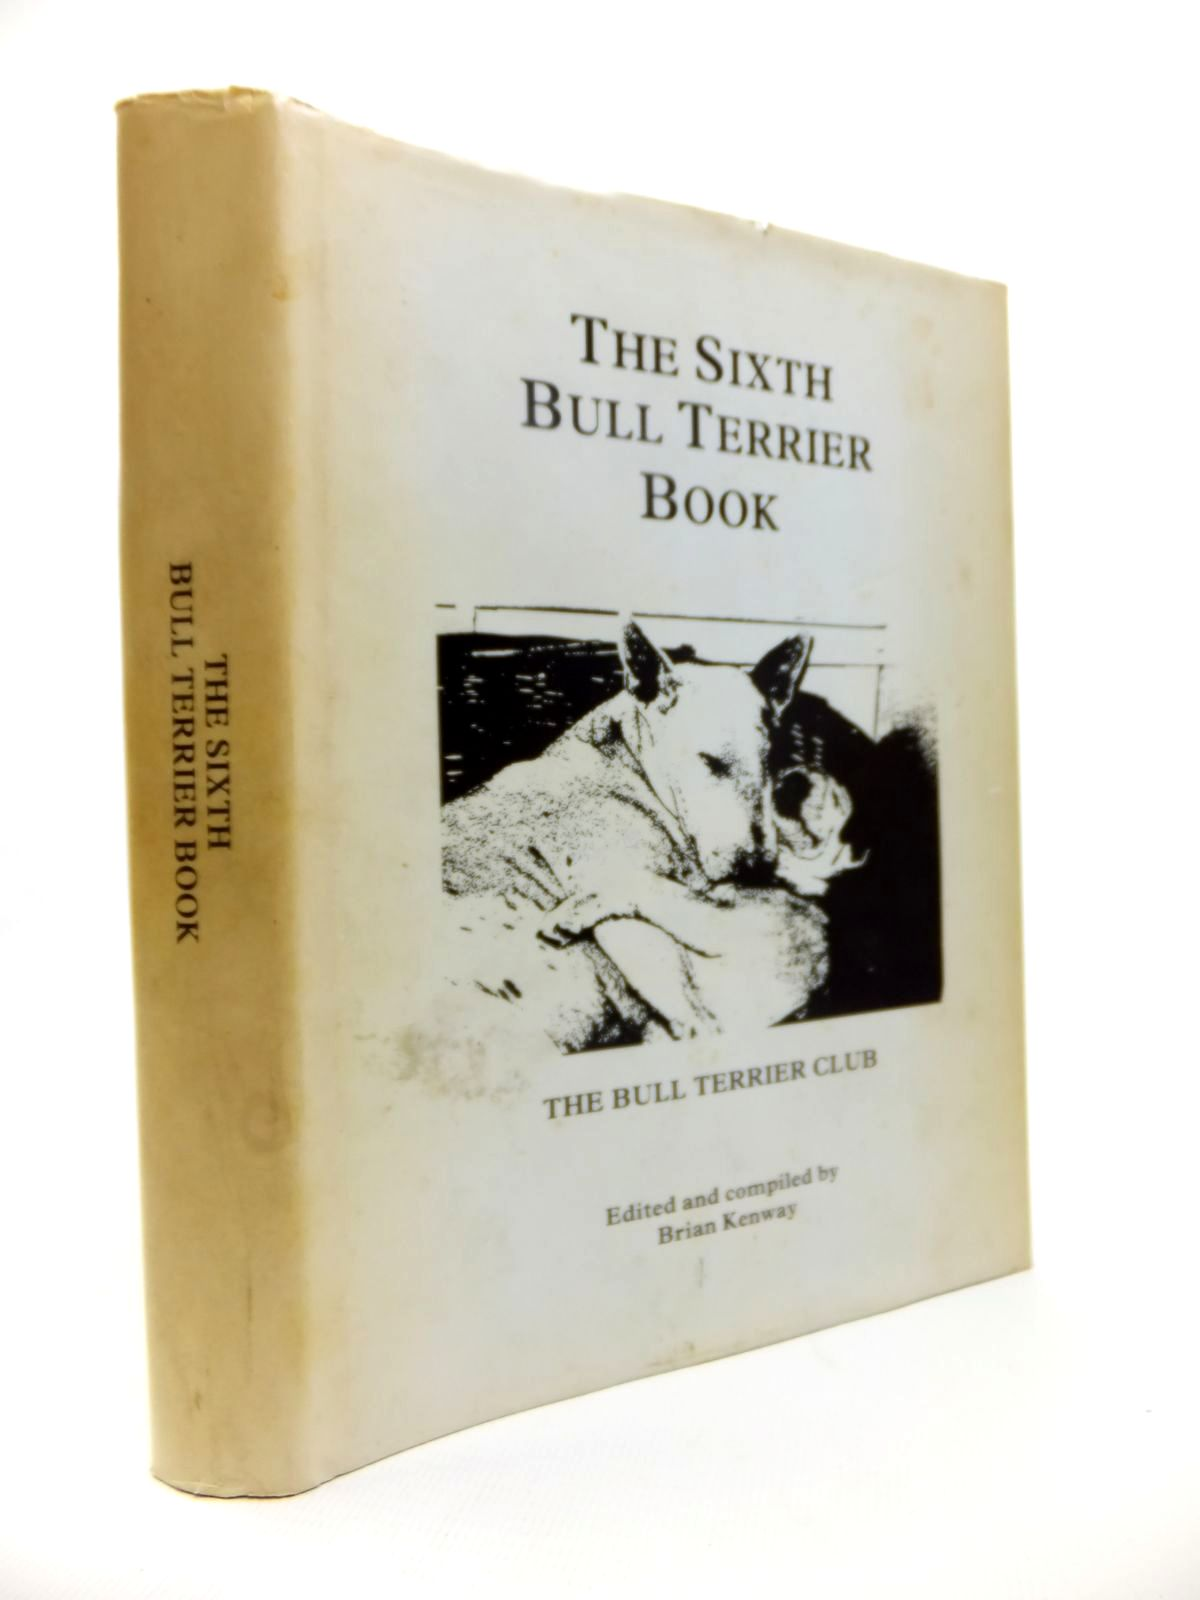 Photo of THE SIXTH BULL TERRIER BOOK written by Kenway, Brian published by The Bull Terrier Club (STOCK CODE: 1812047)  for sale by Stella & Rose's Books